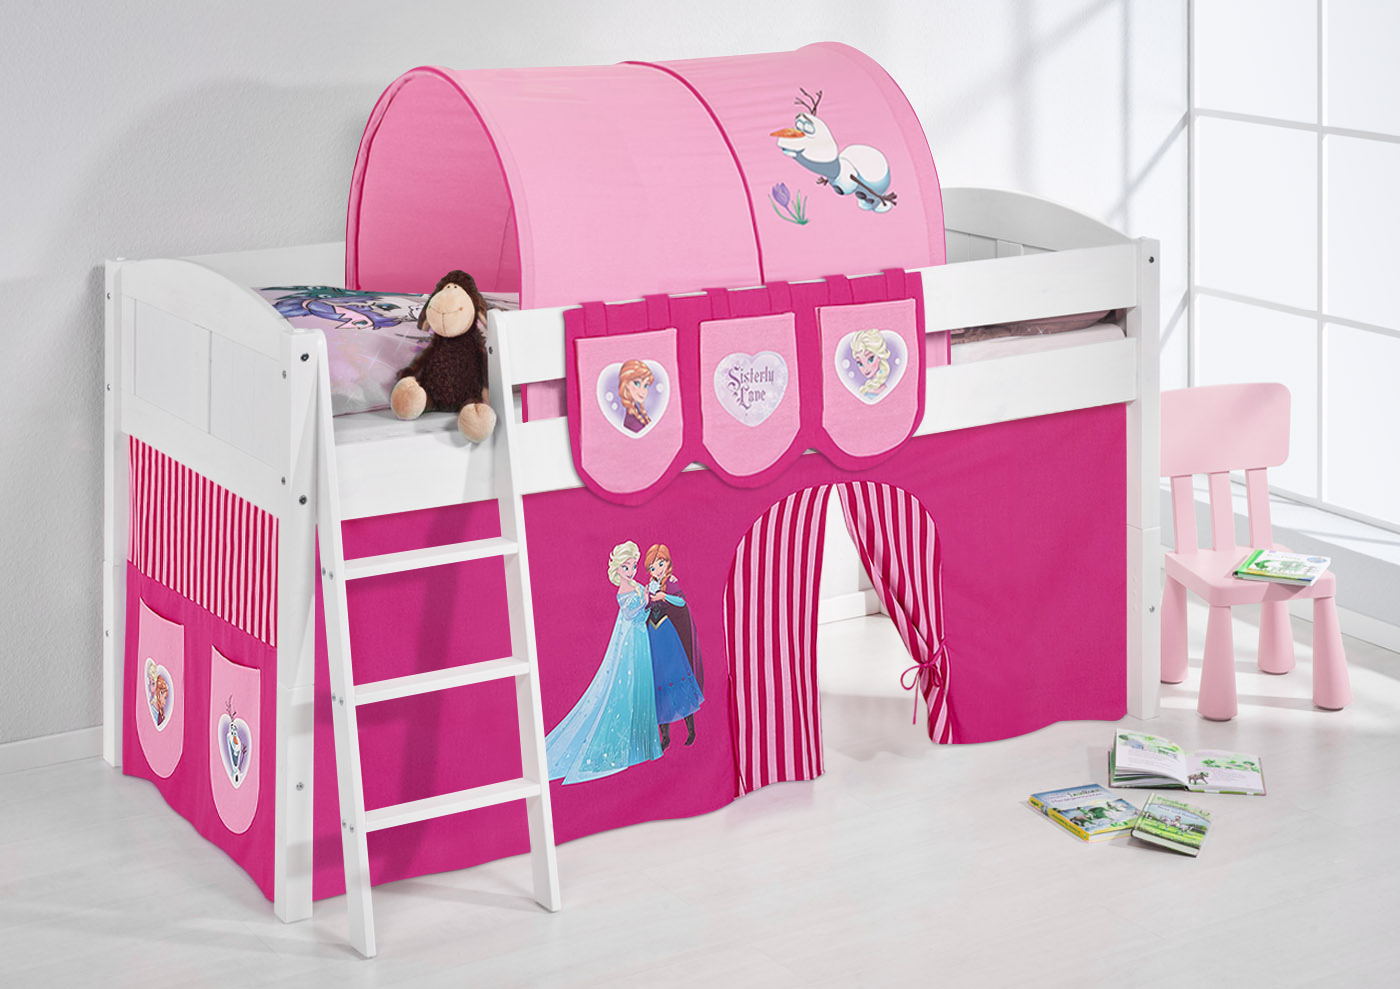 spielbett hochbett kinderbett kinder bett umbaubar zum einzelbett 4106 ebay. Black Bedroom Furniture Sets. Home Design Ideas